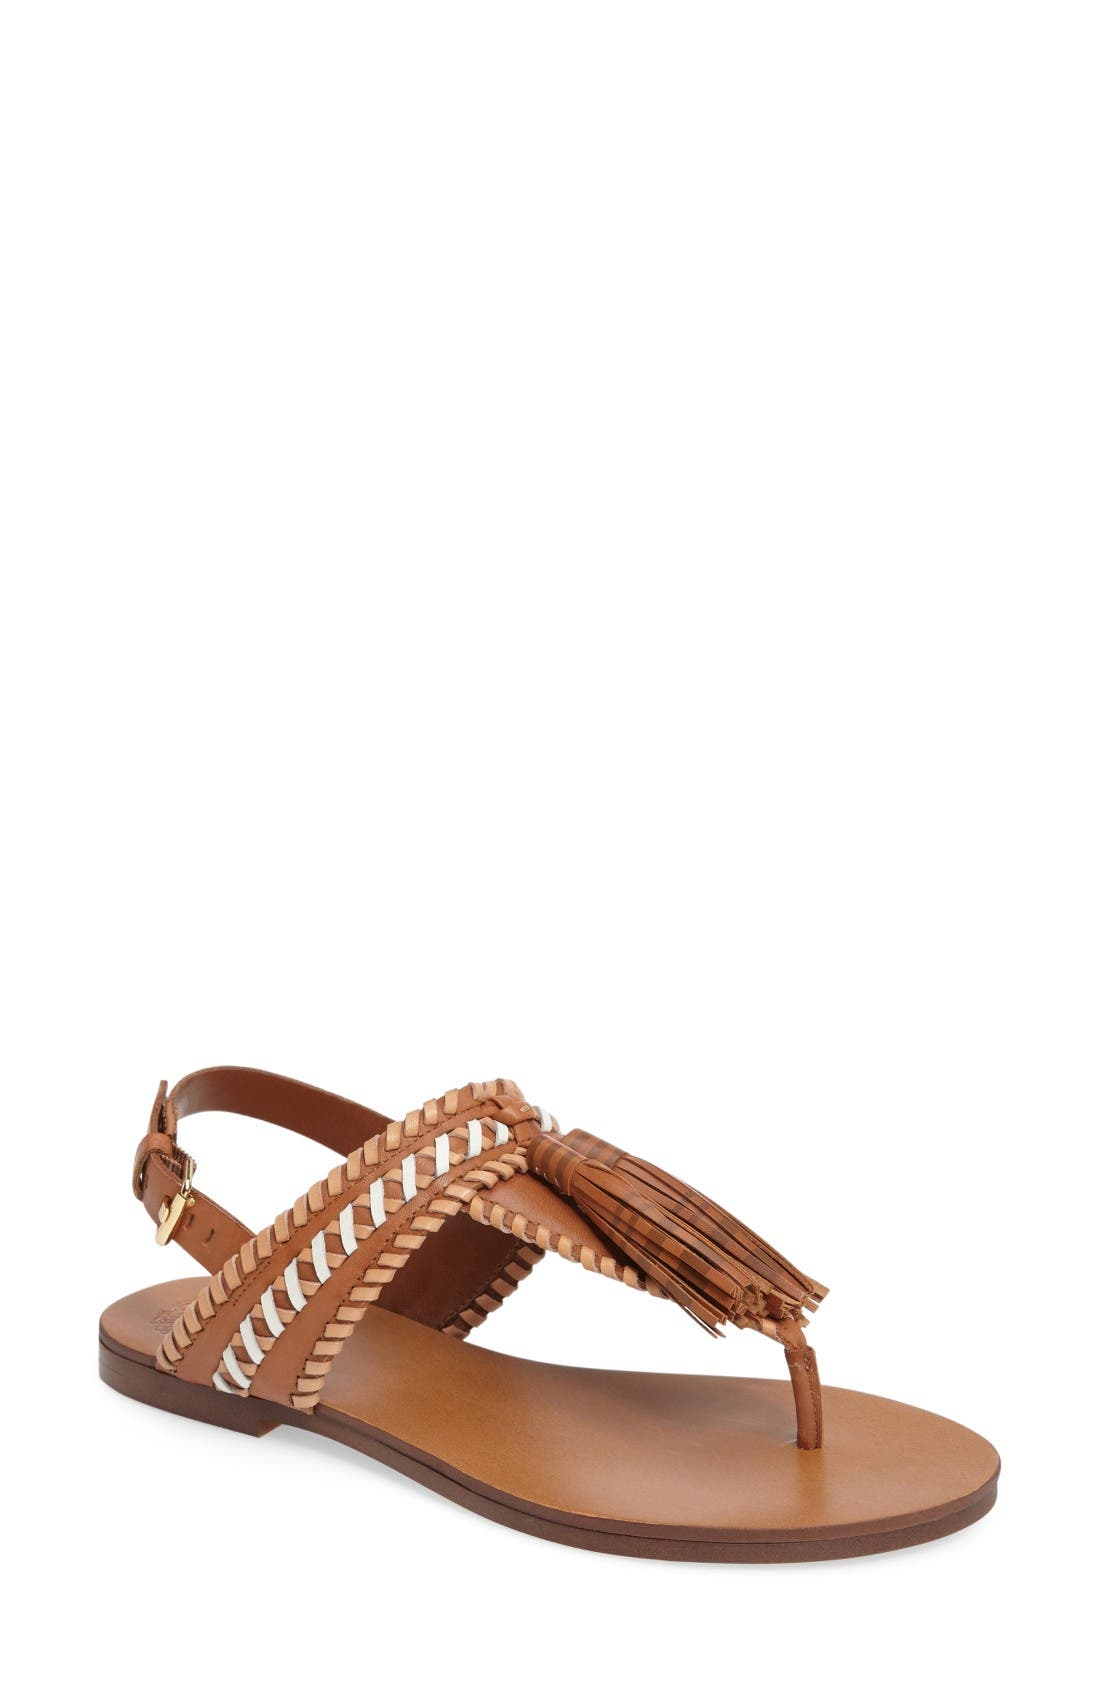 Alternate Image 1 Selected - Vince Camuto Rebeka Sandal (Women)